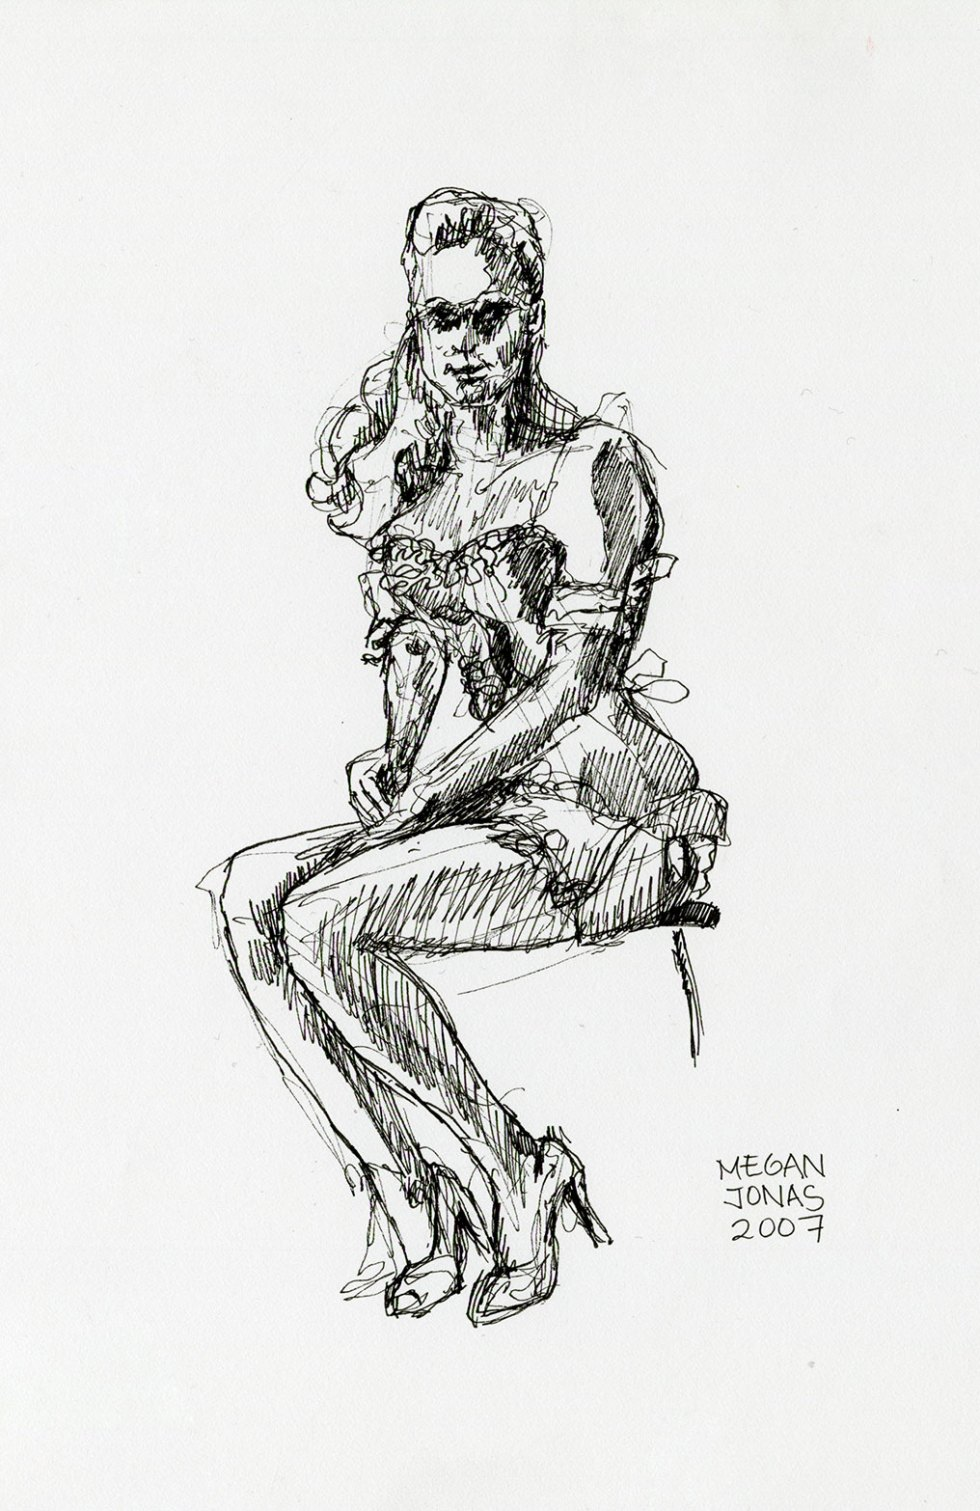 2007 Dr. Sketchy's London, Candy Cane